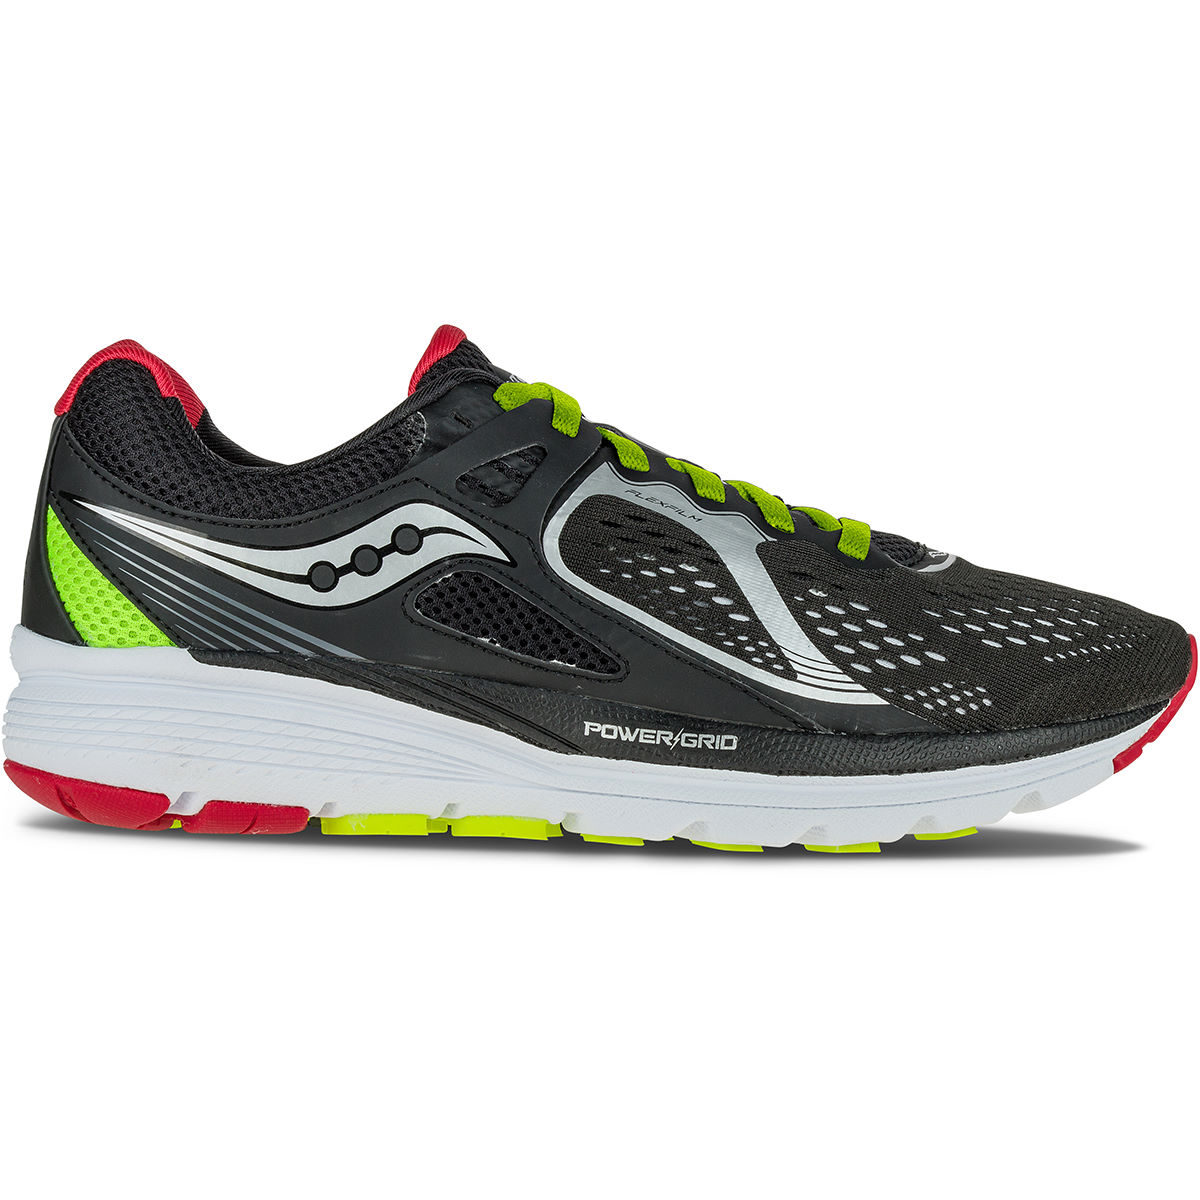 Chaussures Saucony Valor (AH16) - 10 UK Black/Red/Citron Chaussures de running stables